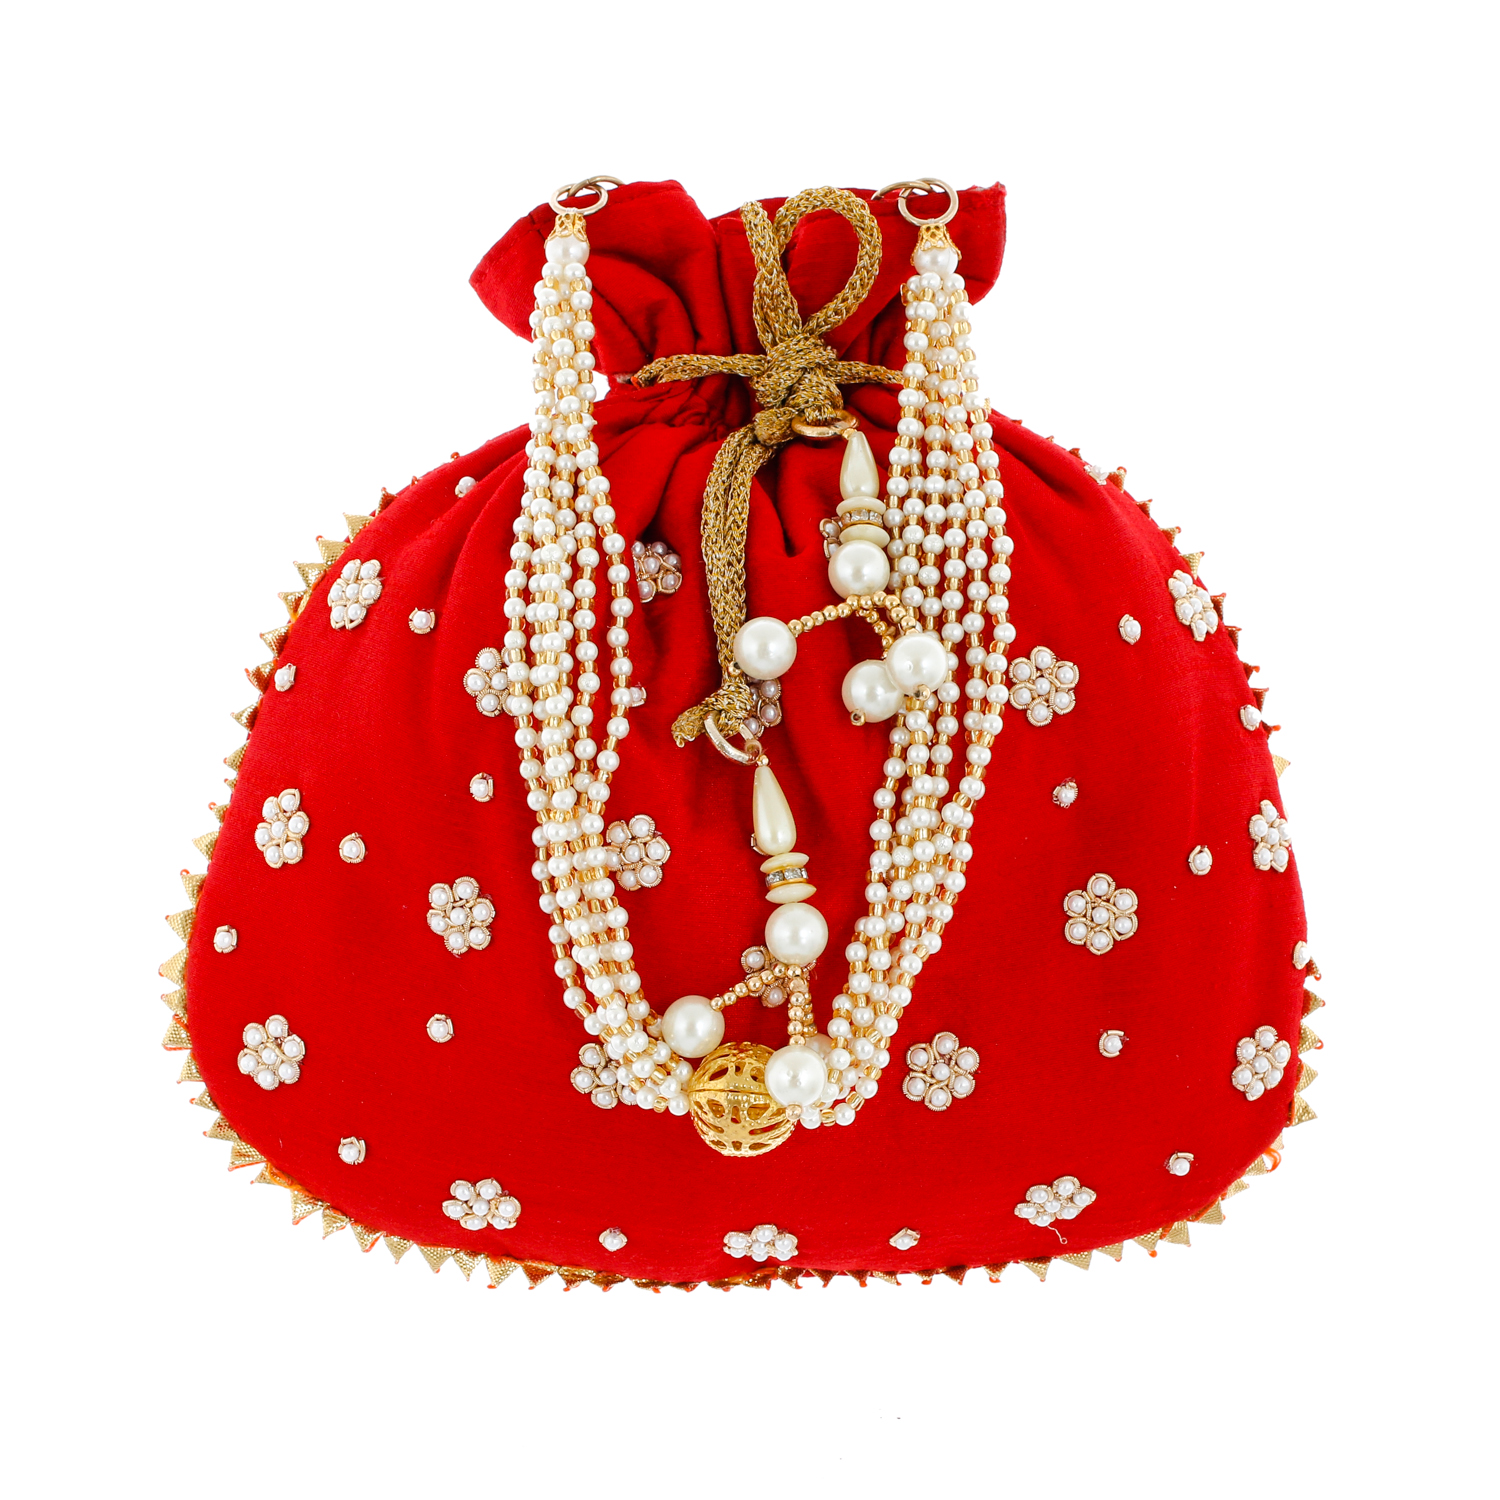 Kuber Industries Ethnic Clutch Silk 2 Pieces Potli Batwa Pouch Bag with Beadwork Gift For Women (Red) - CTKTC23081